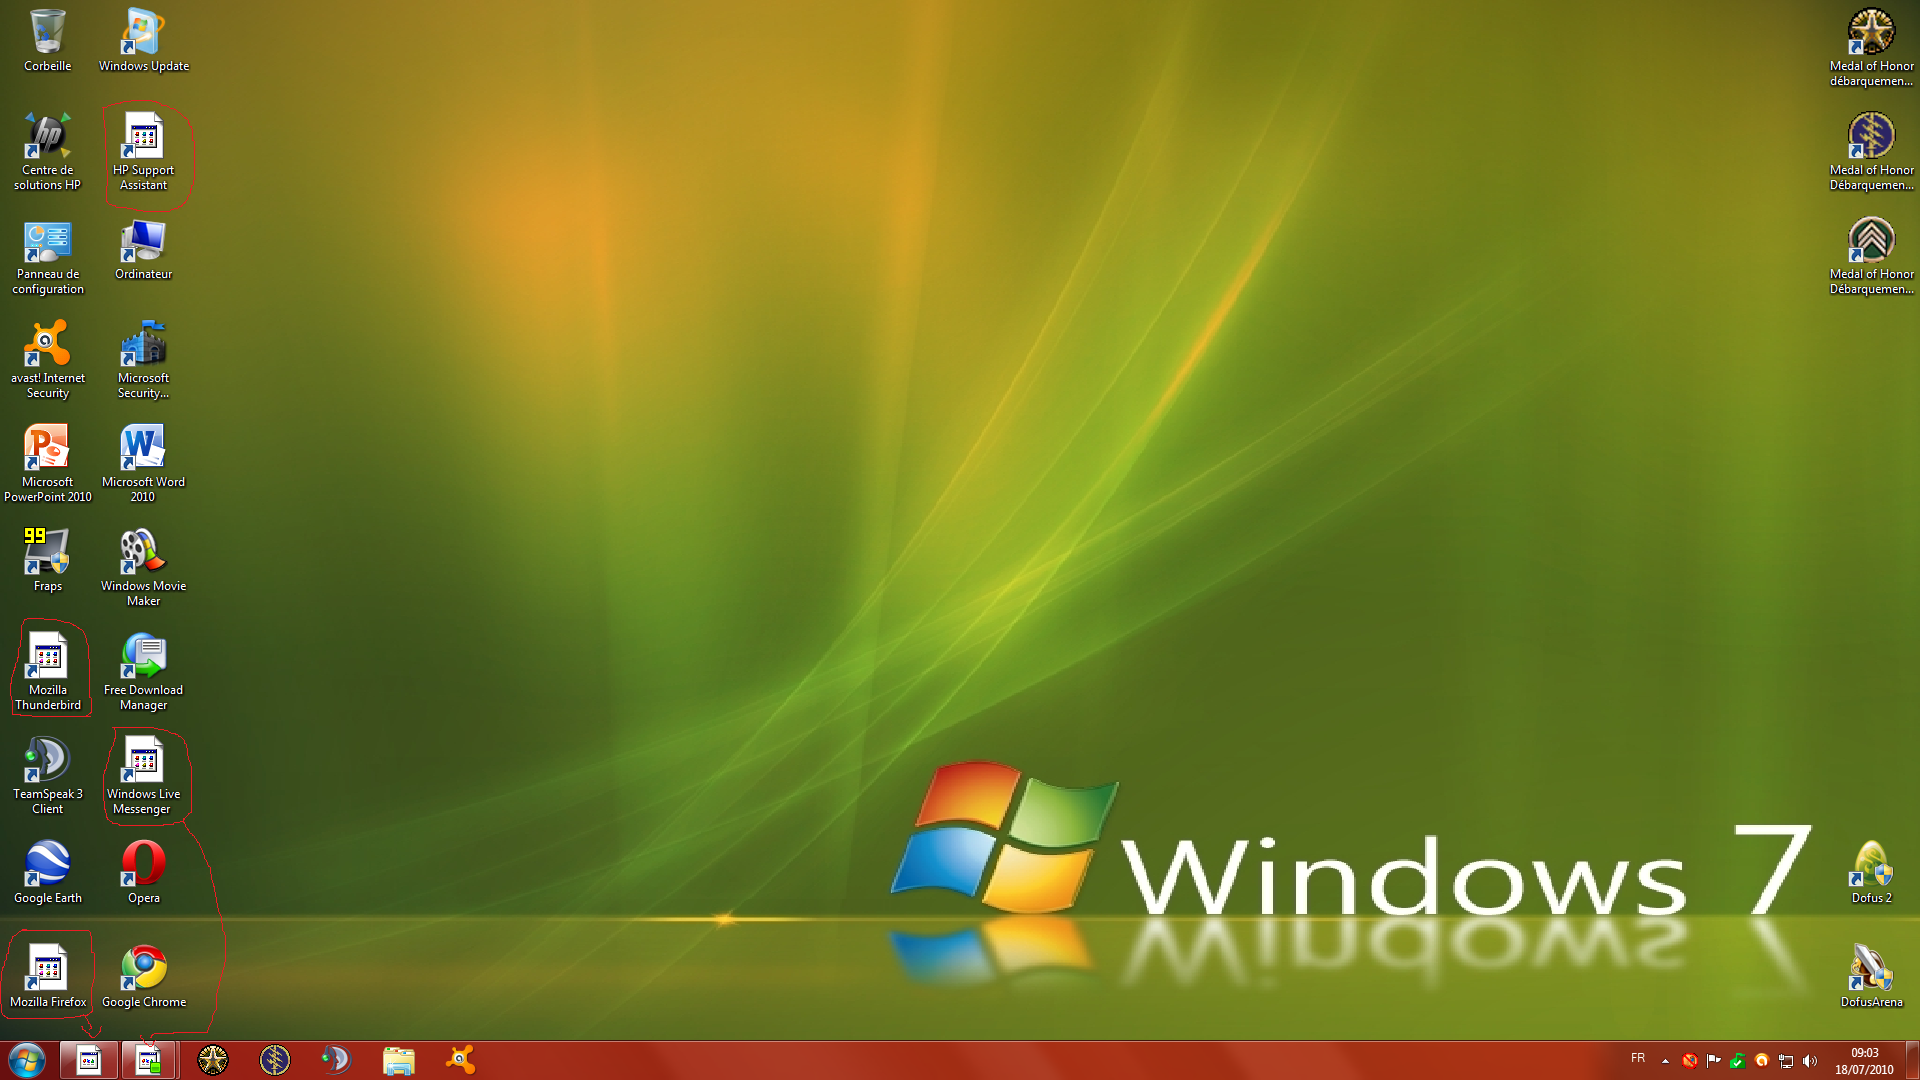 Windows 7 icone sur le bureau r solu windows 7 - Ordinateur de bureau windows 7 pro ...